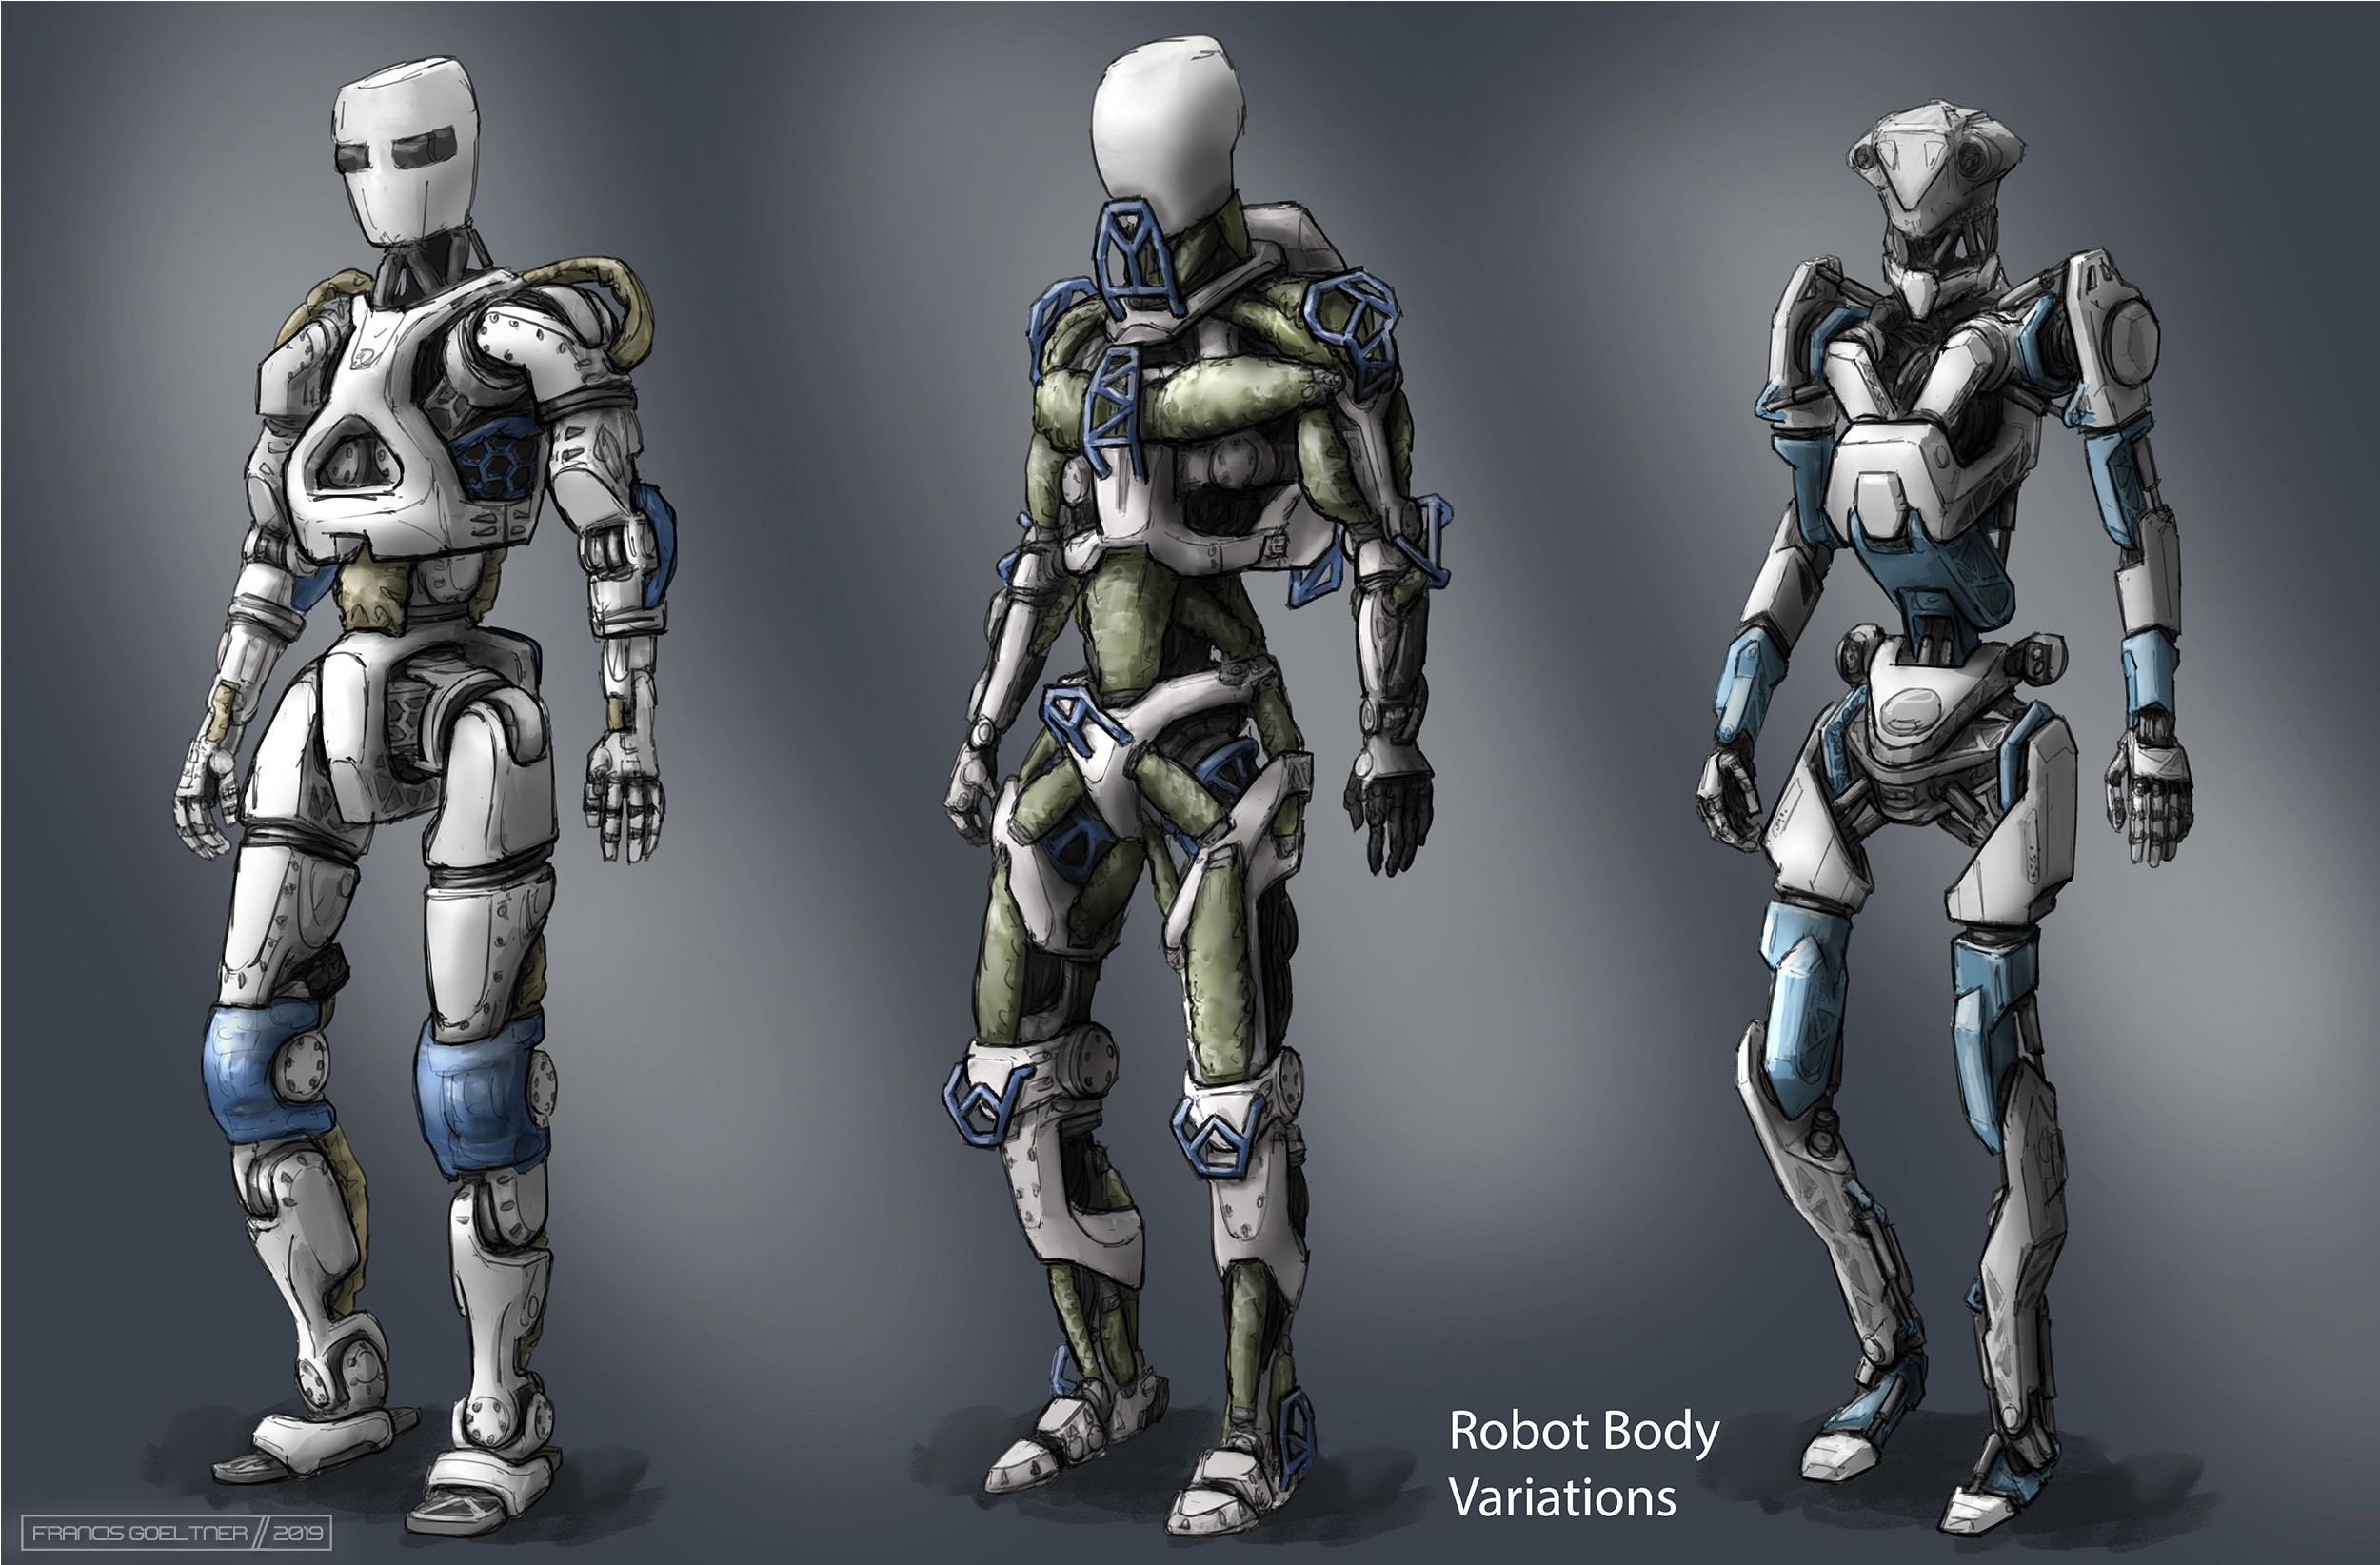 Sketches of body designs